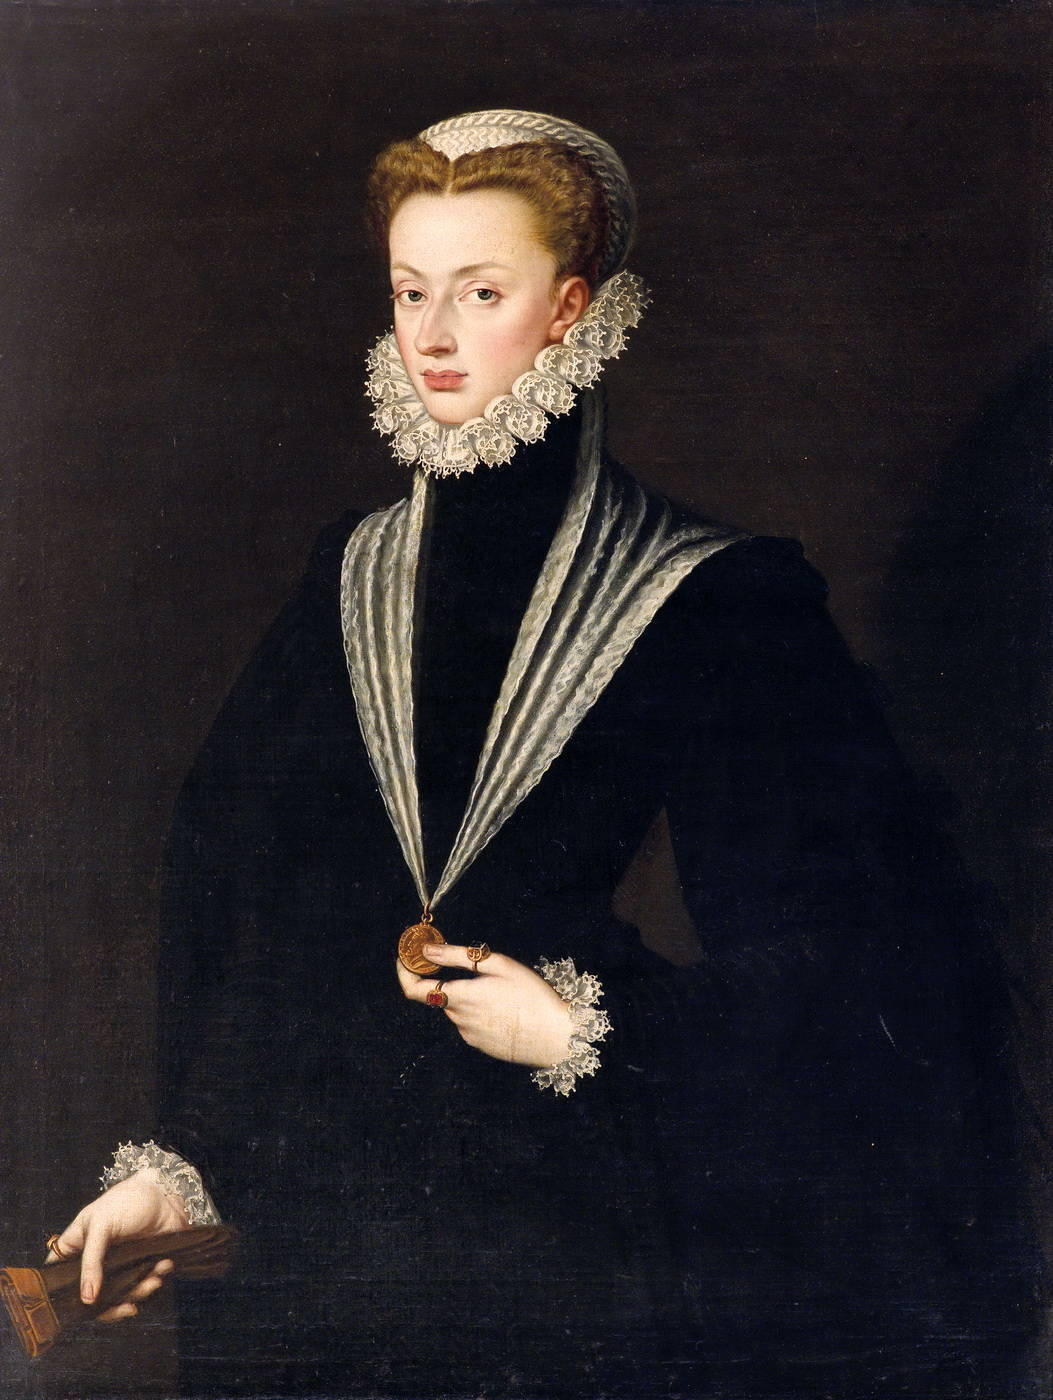 close similarities between the london portrait and the habsburg portrait